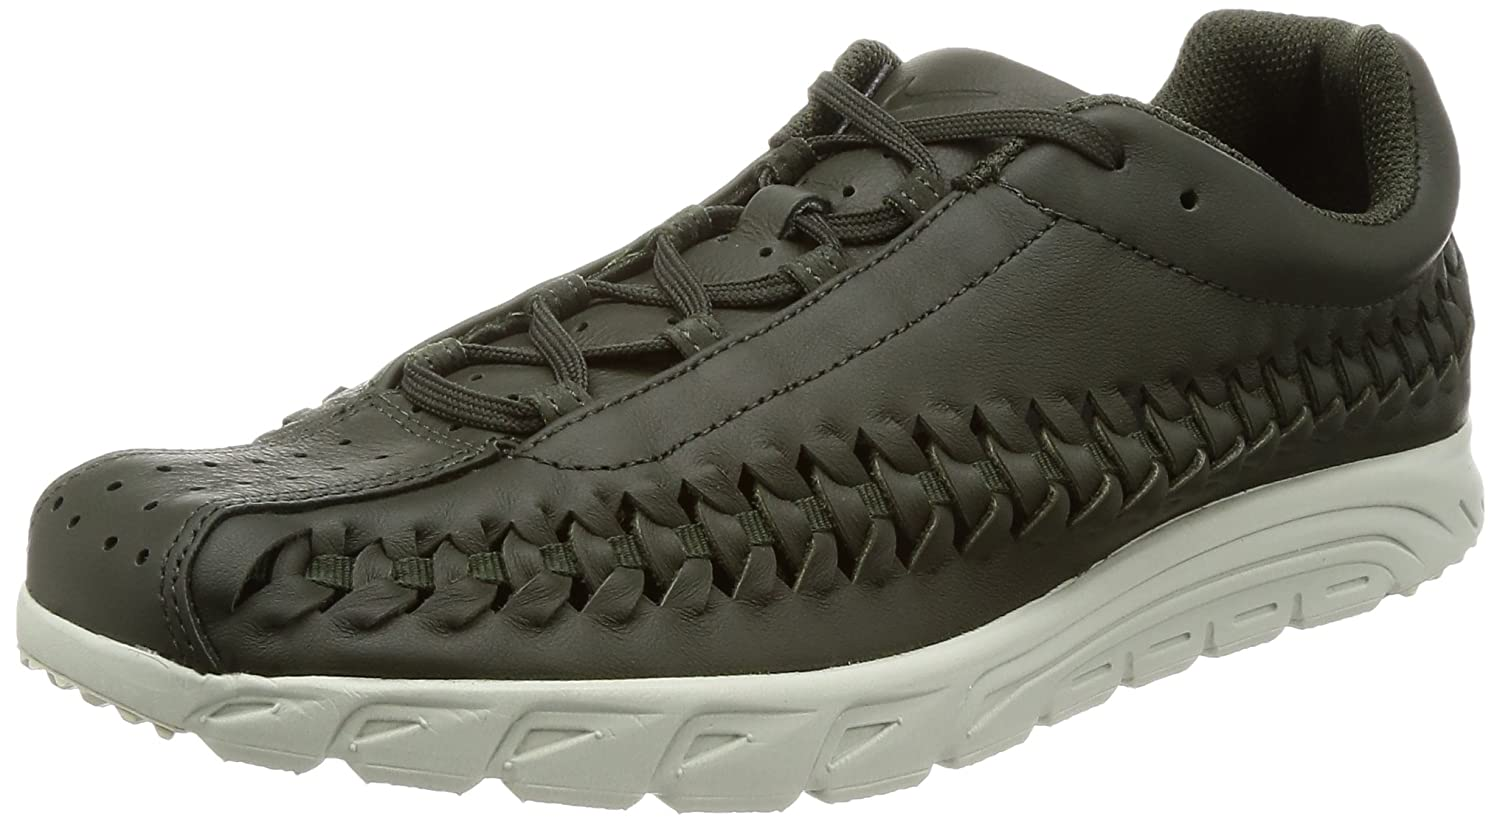 Nike Herren Mayfly Woven Turnschuhe  42 D(M) EU|Sequoia/Pale Grey-black